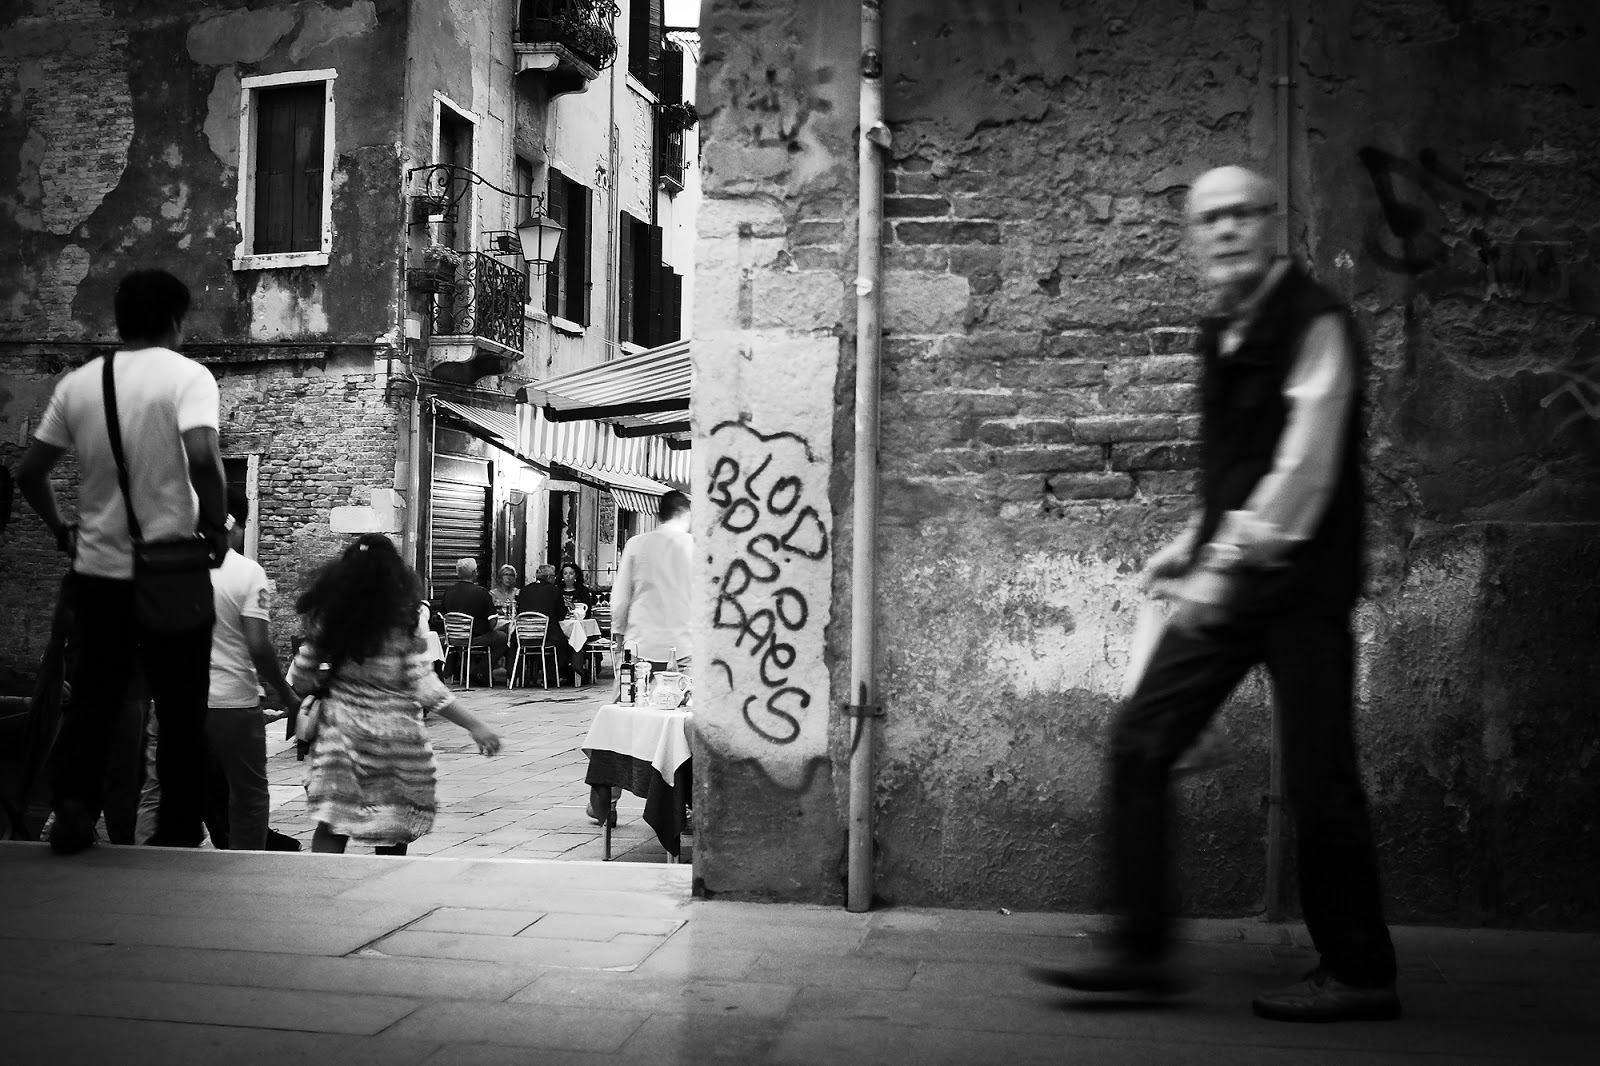 Fujifilm X100s Image of Venice by Willie Kers